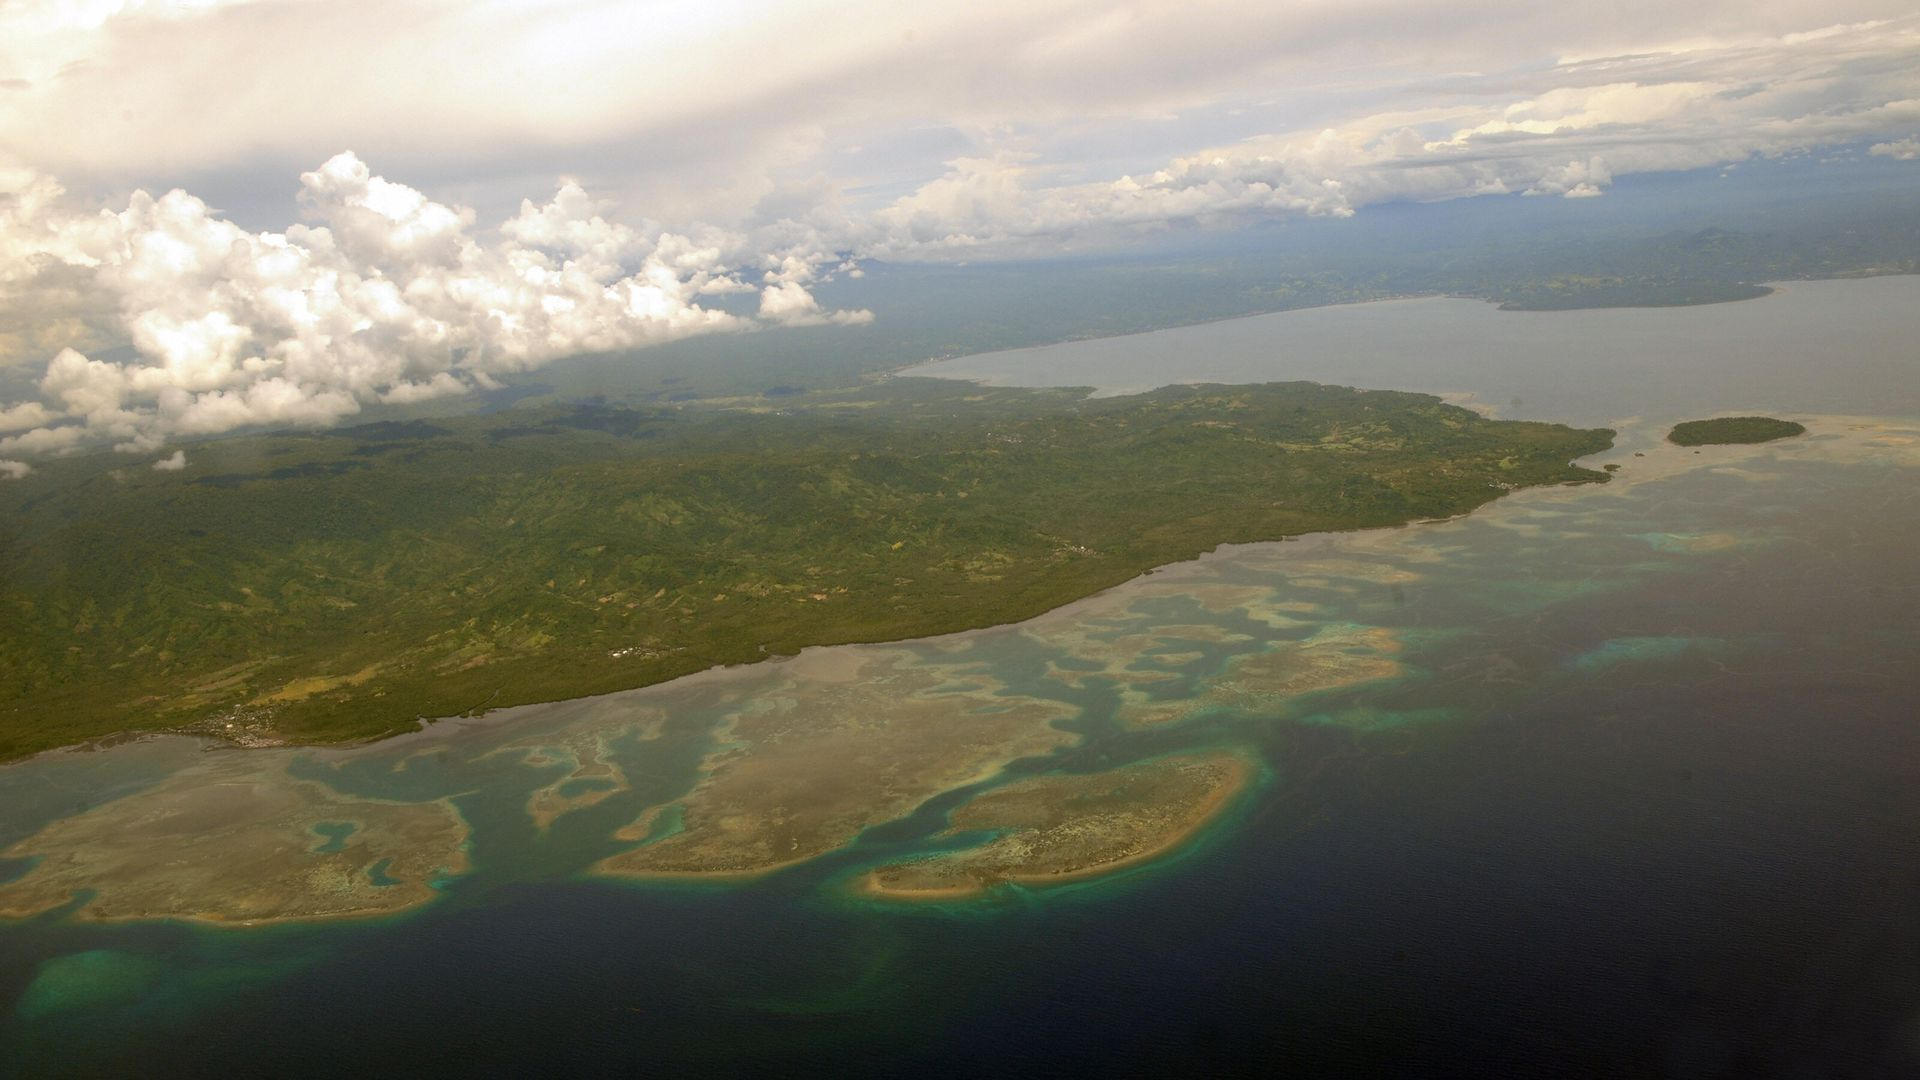 The coast of northern Sulawesi is seen from a plane approaching the capital city of Manado